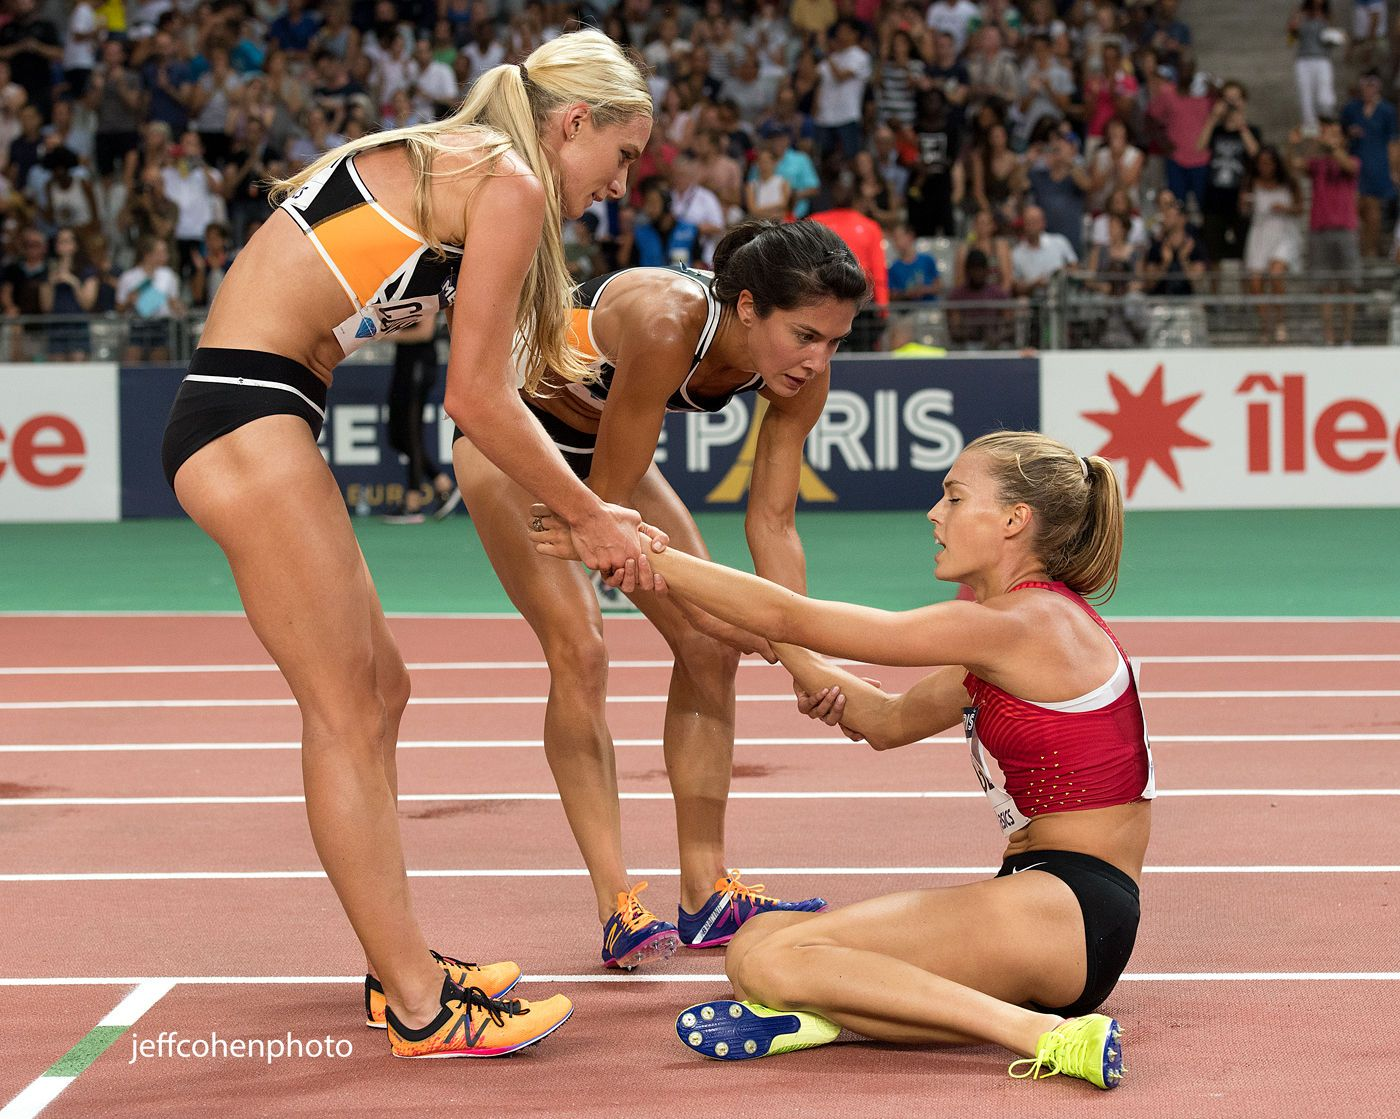 1r2016_meeting_de_paris_emma_steph_colleenjeff_cohen_photo_4316_web.jpg